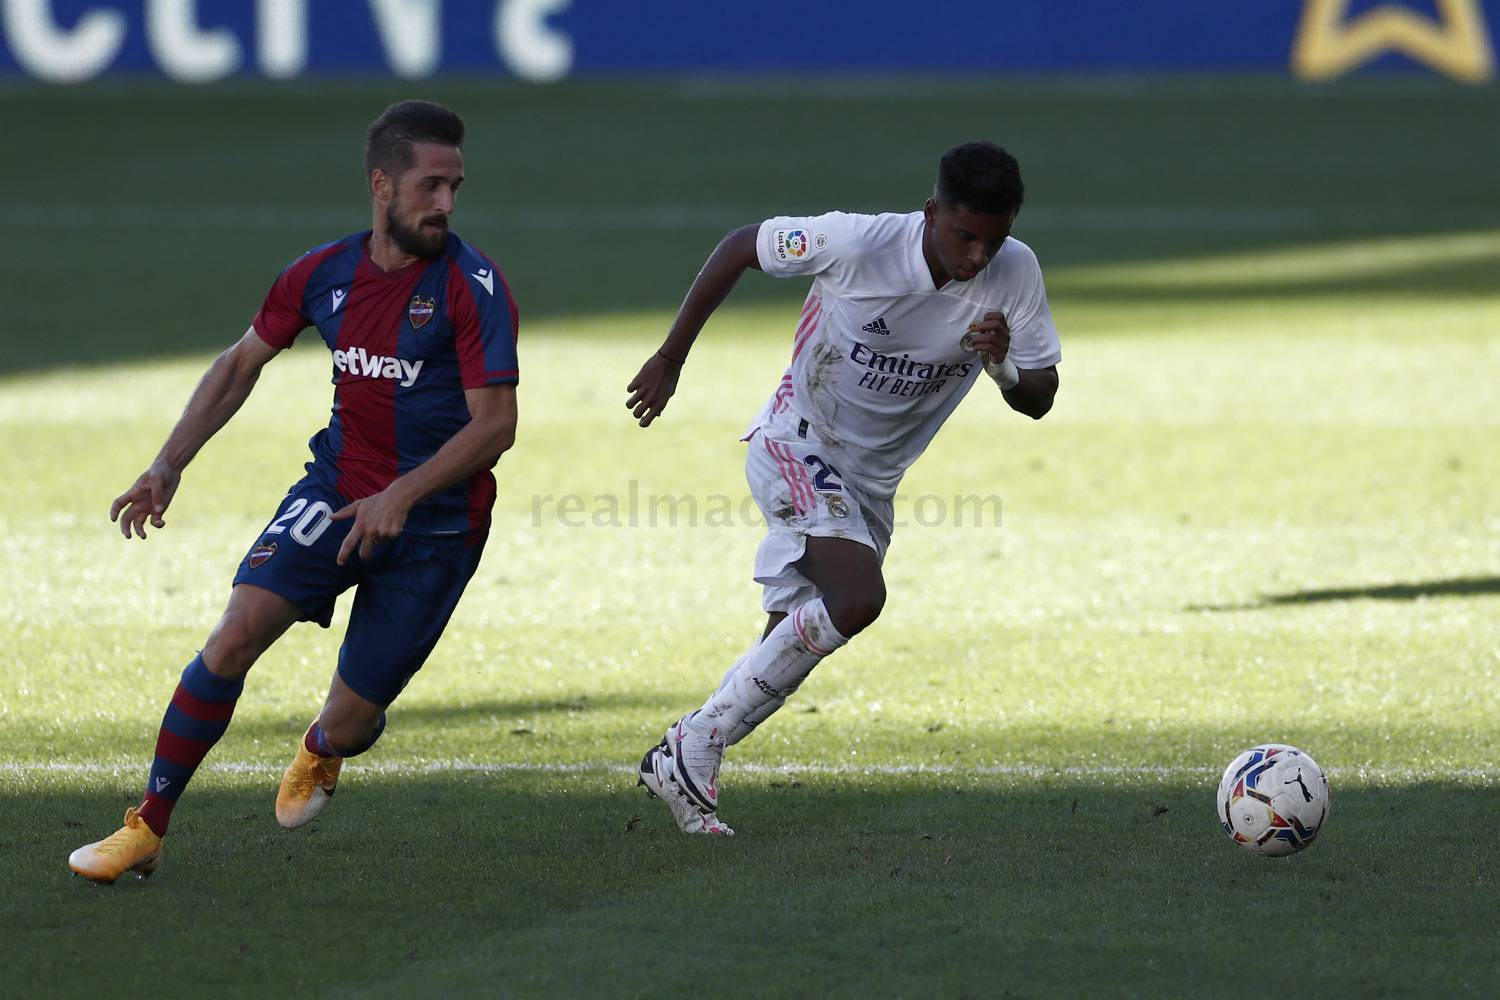 Real Madrid - Levante - Real Madrid - 04-10-2020